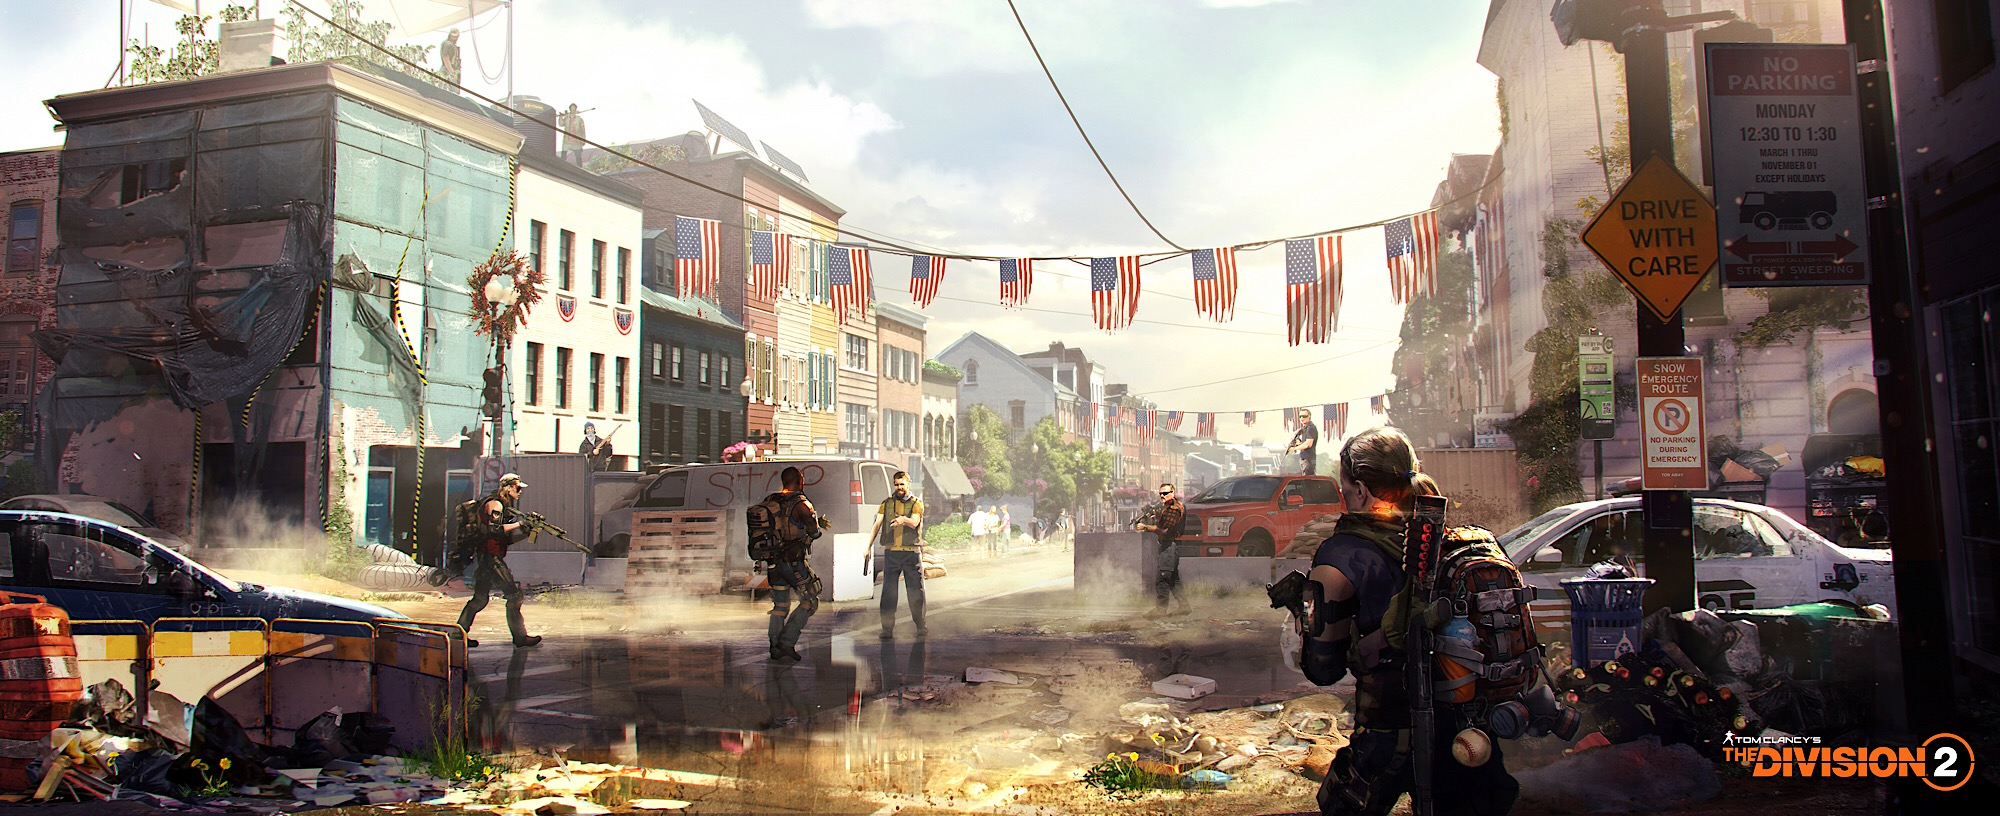 The Division 2 Ubisoft Aftershow Video Screenshots Other